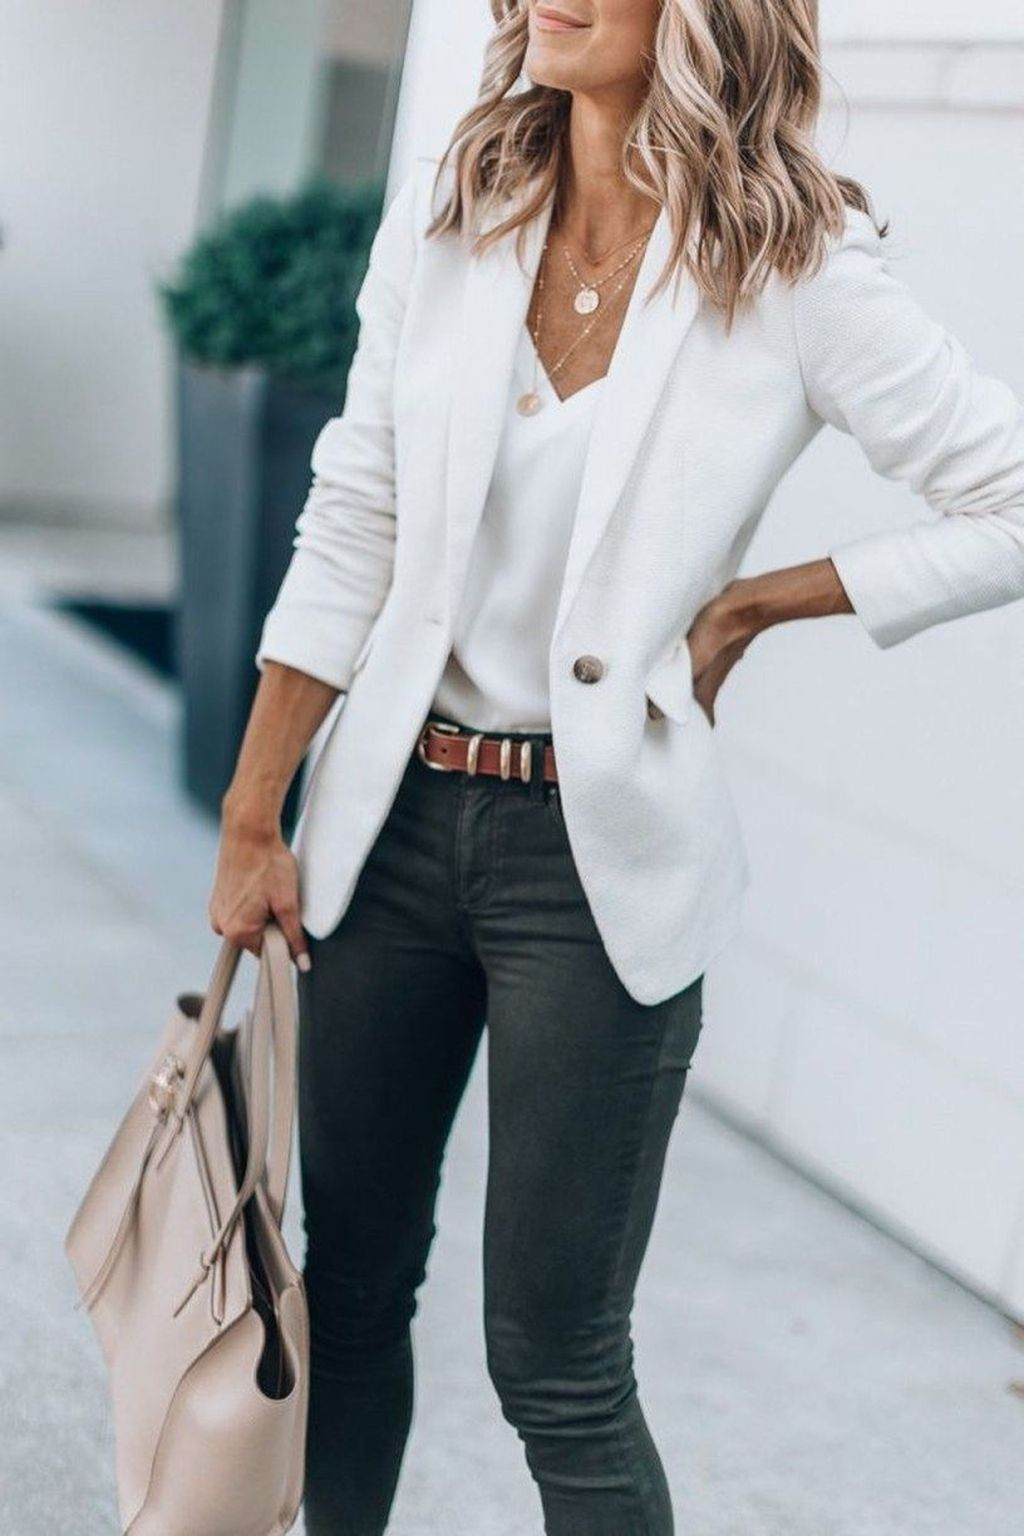 38 Stylish Work Office Outfits Ideas For Women Office Casual